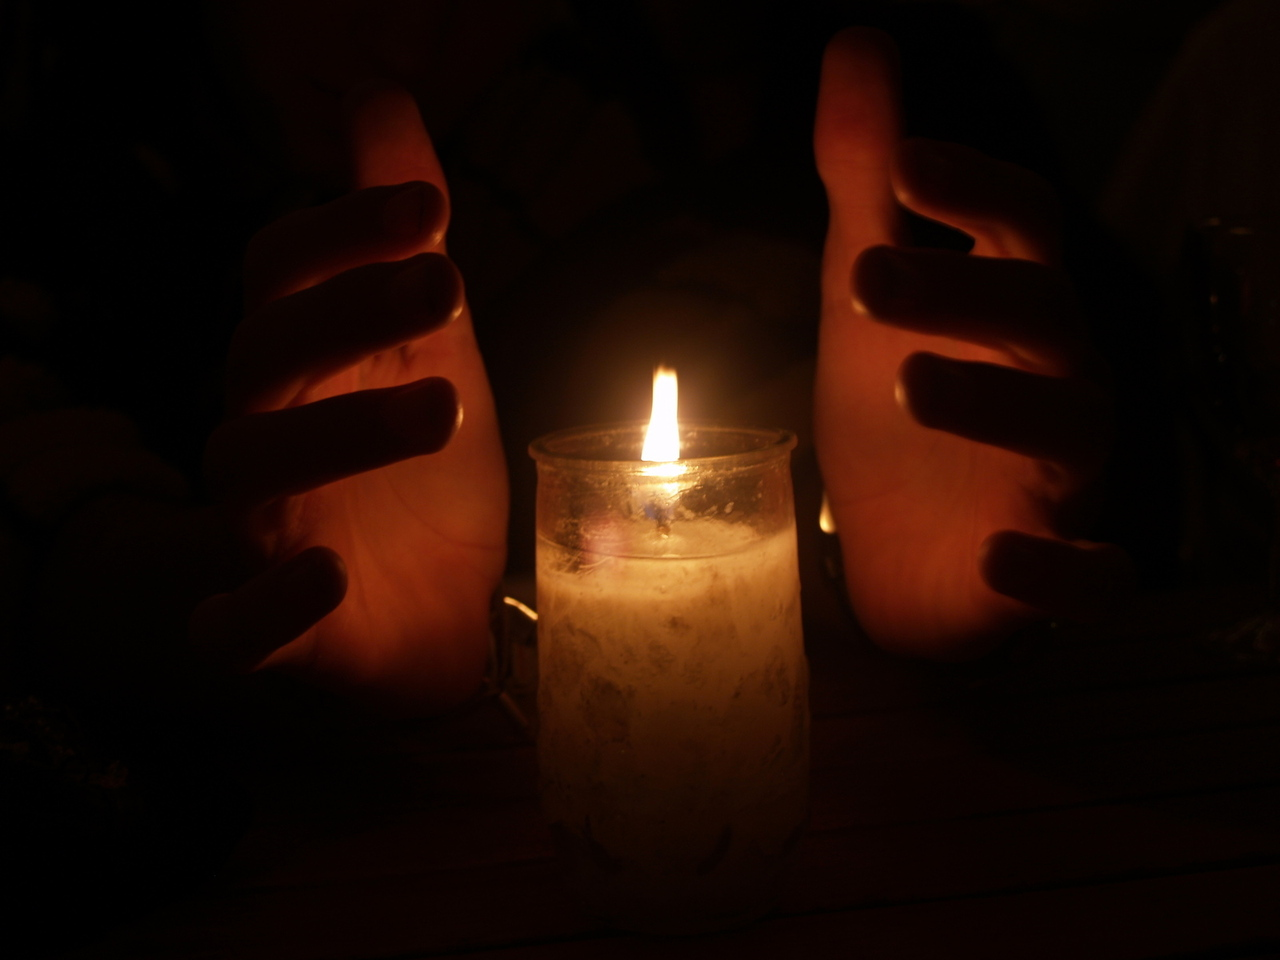 hands-lit-candle-courtesy-freeimages.com